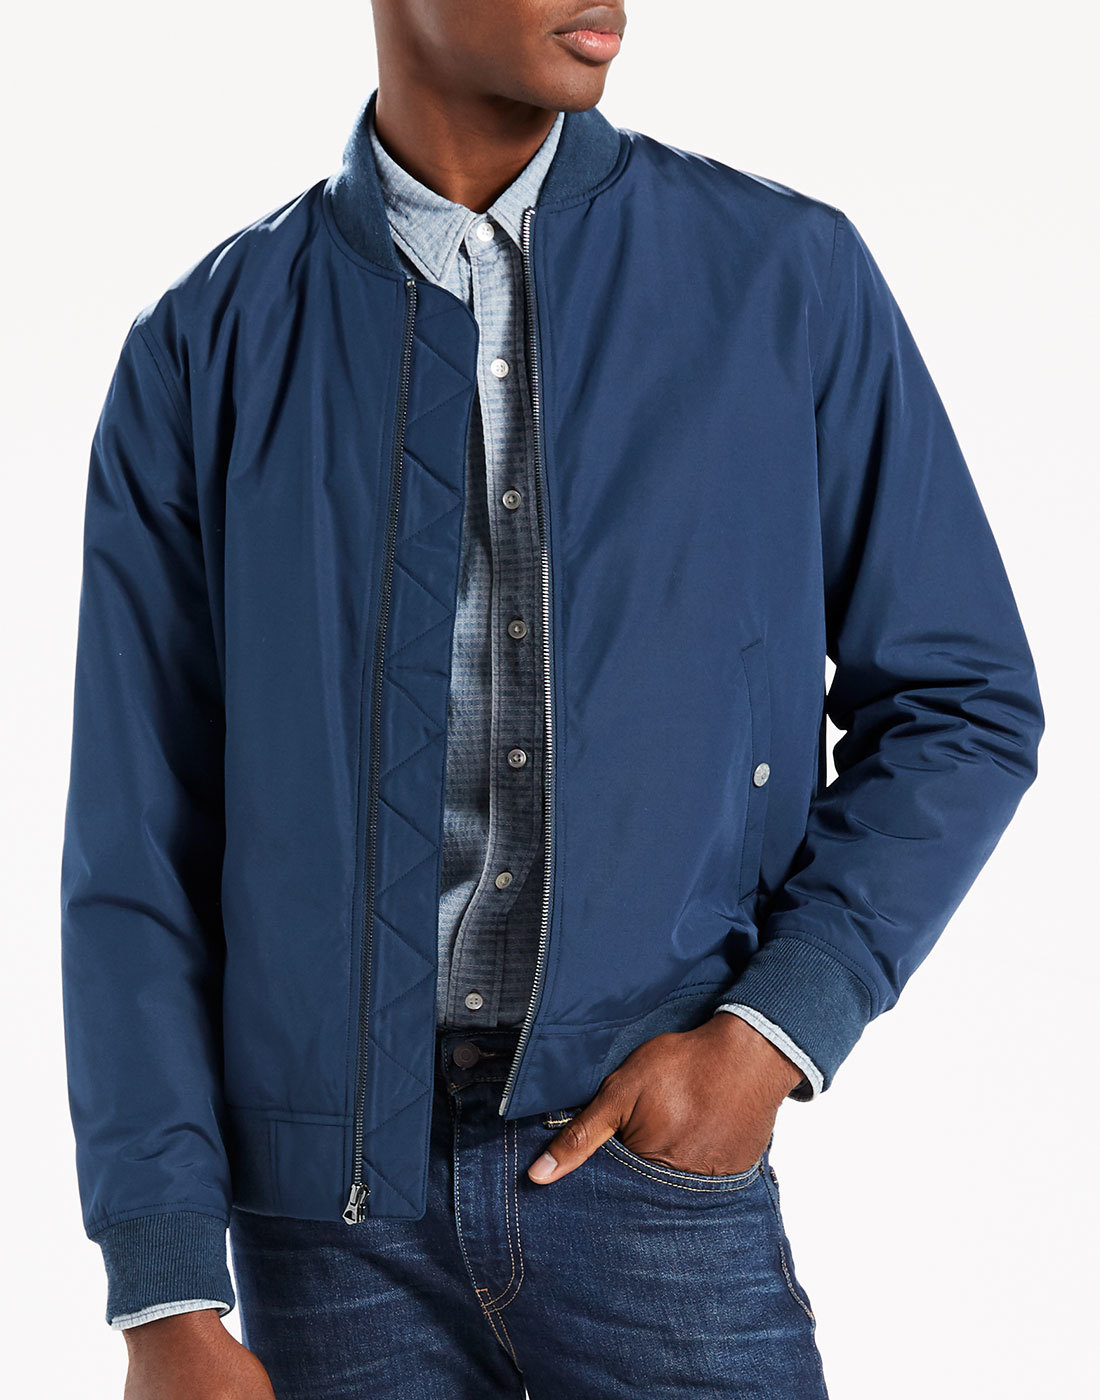 LEVI'S® Thermore Mod MA-1 Military Bomber Jacket